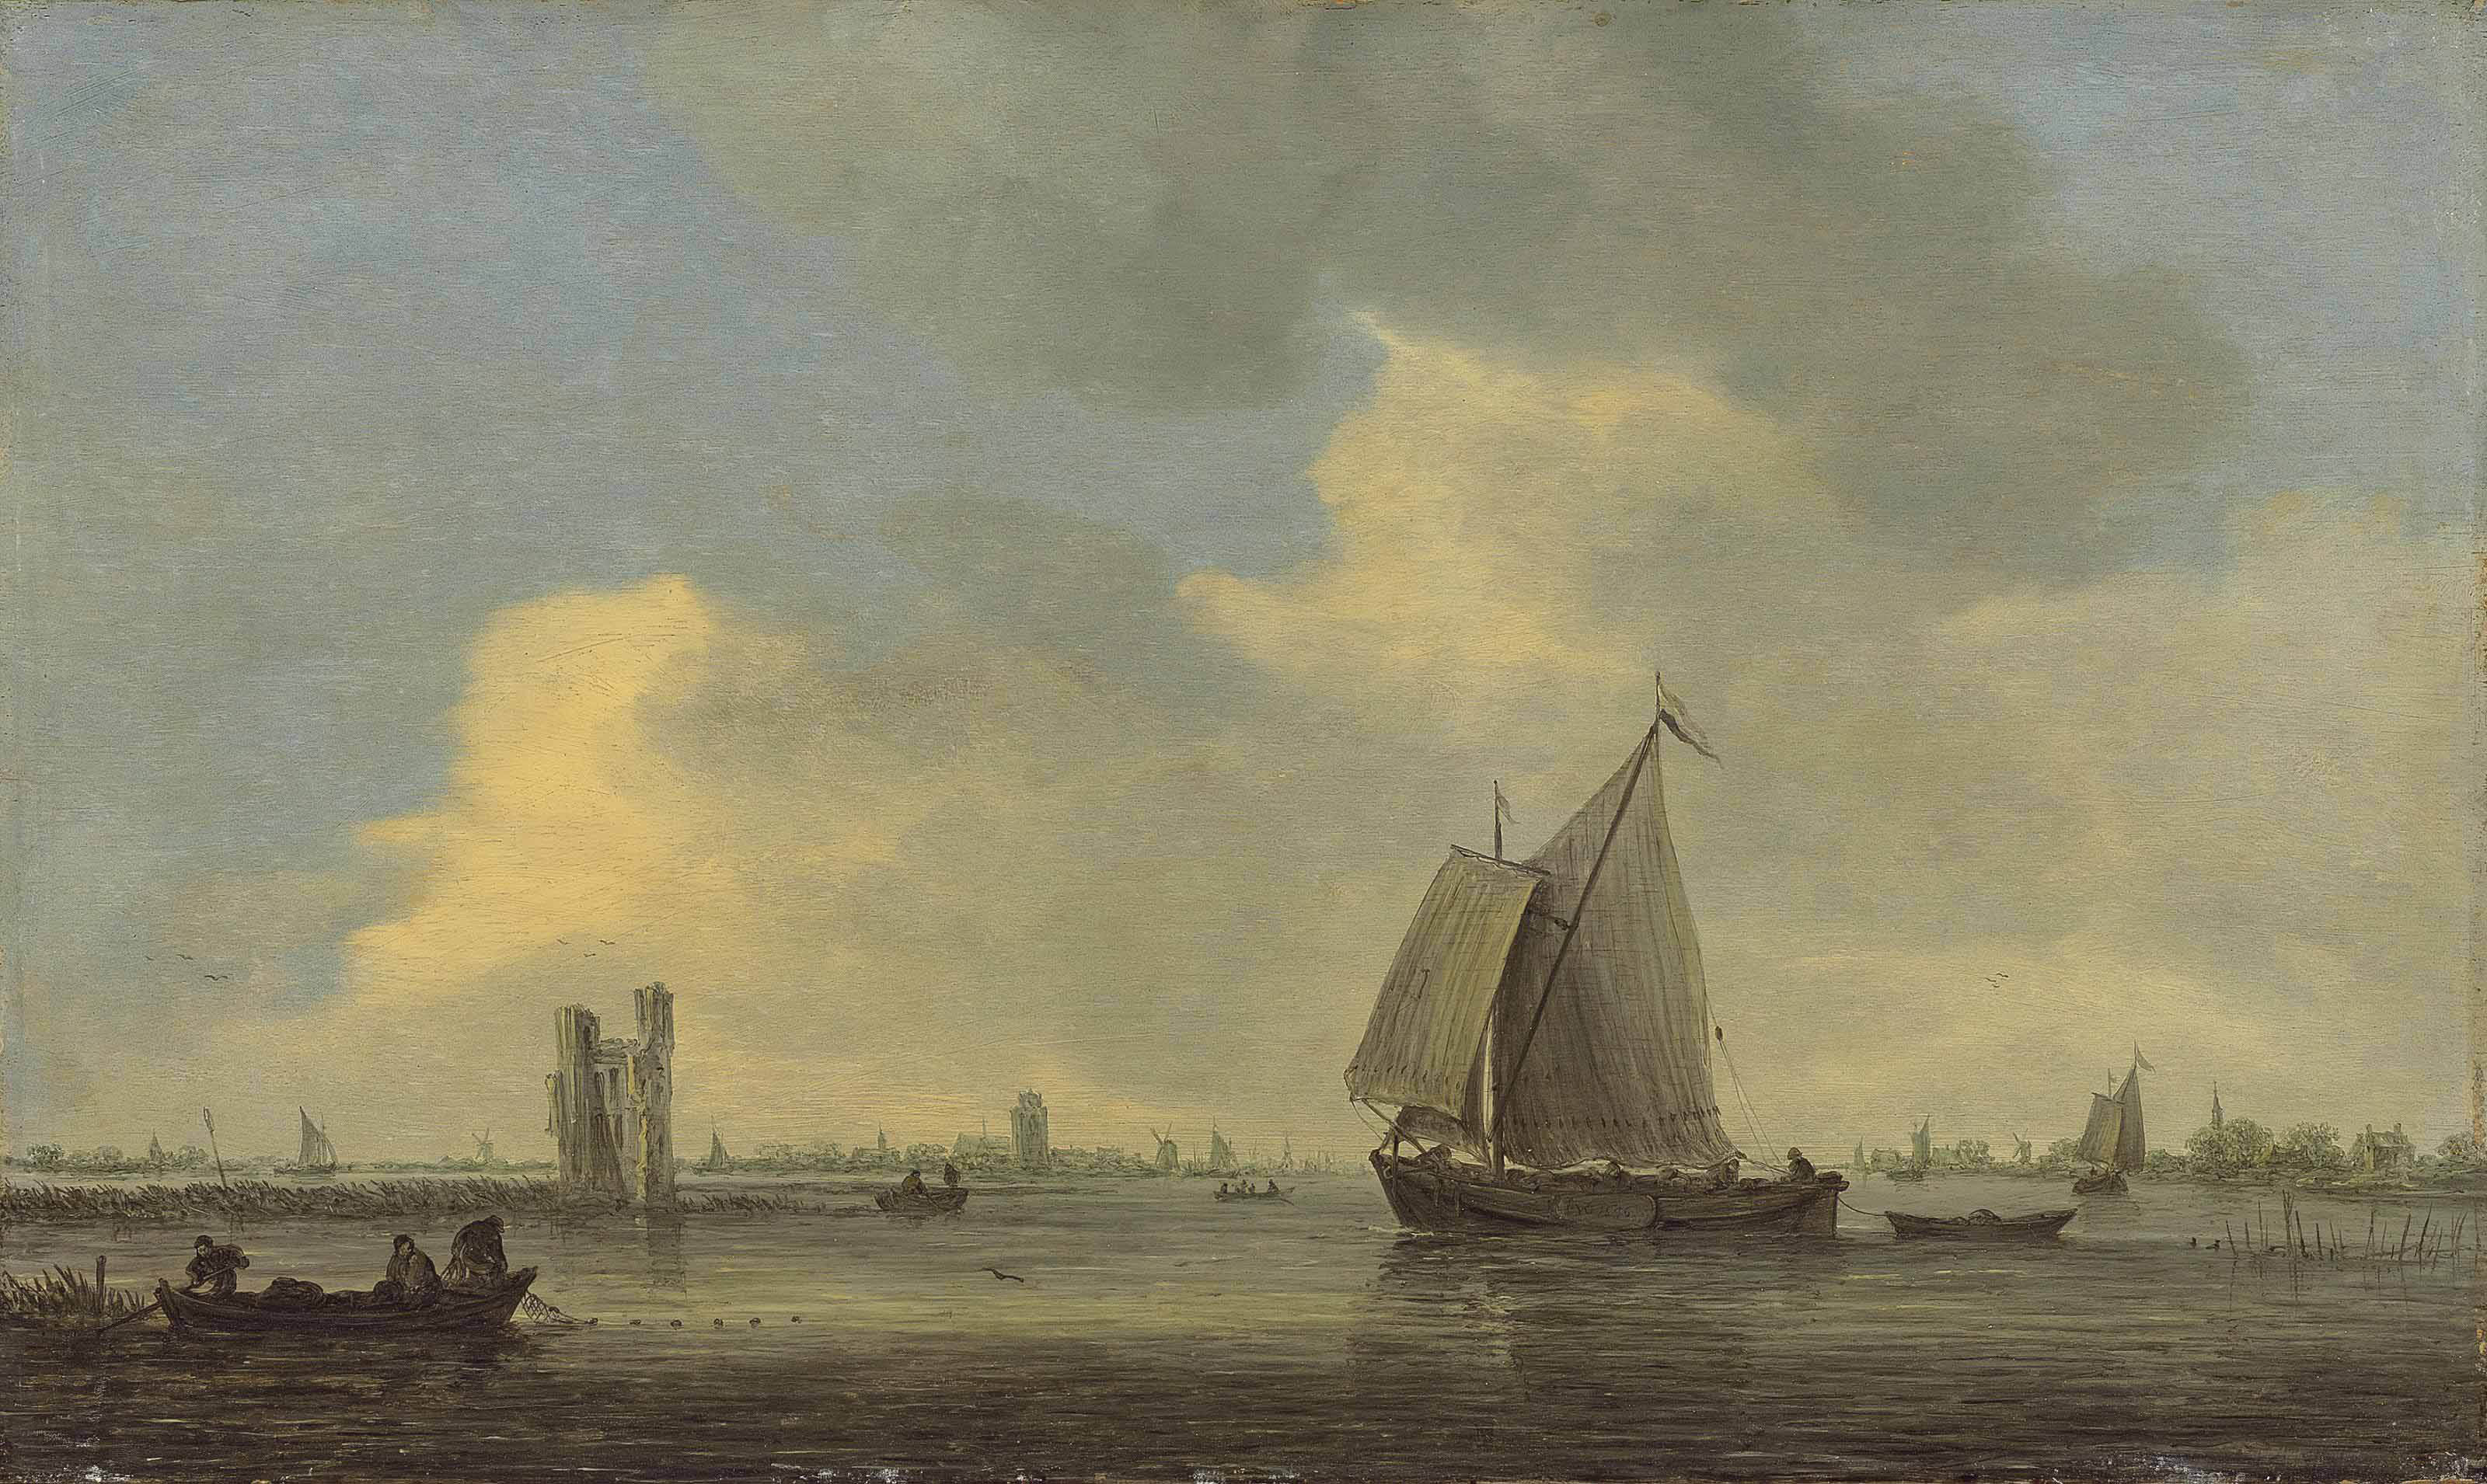 The Merwede with a sailing boat and fishermen throwing out their nets near the Huis te Merwede, Dordrecht, with the Grote Kerk and windmills beyond